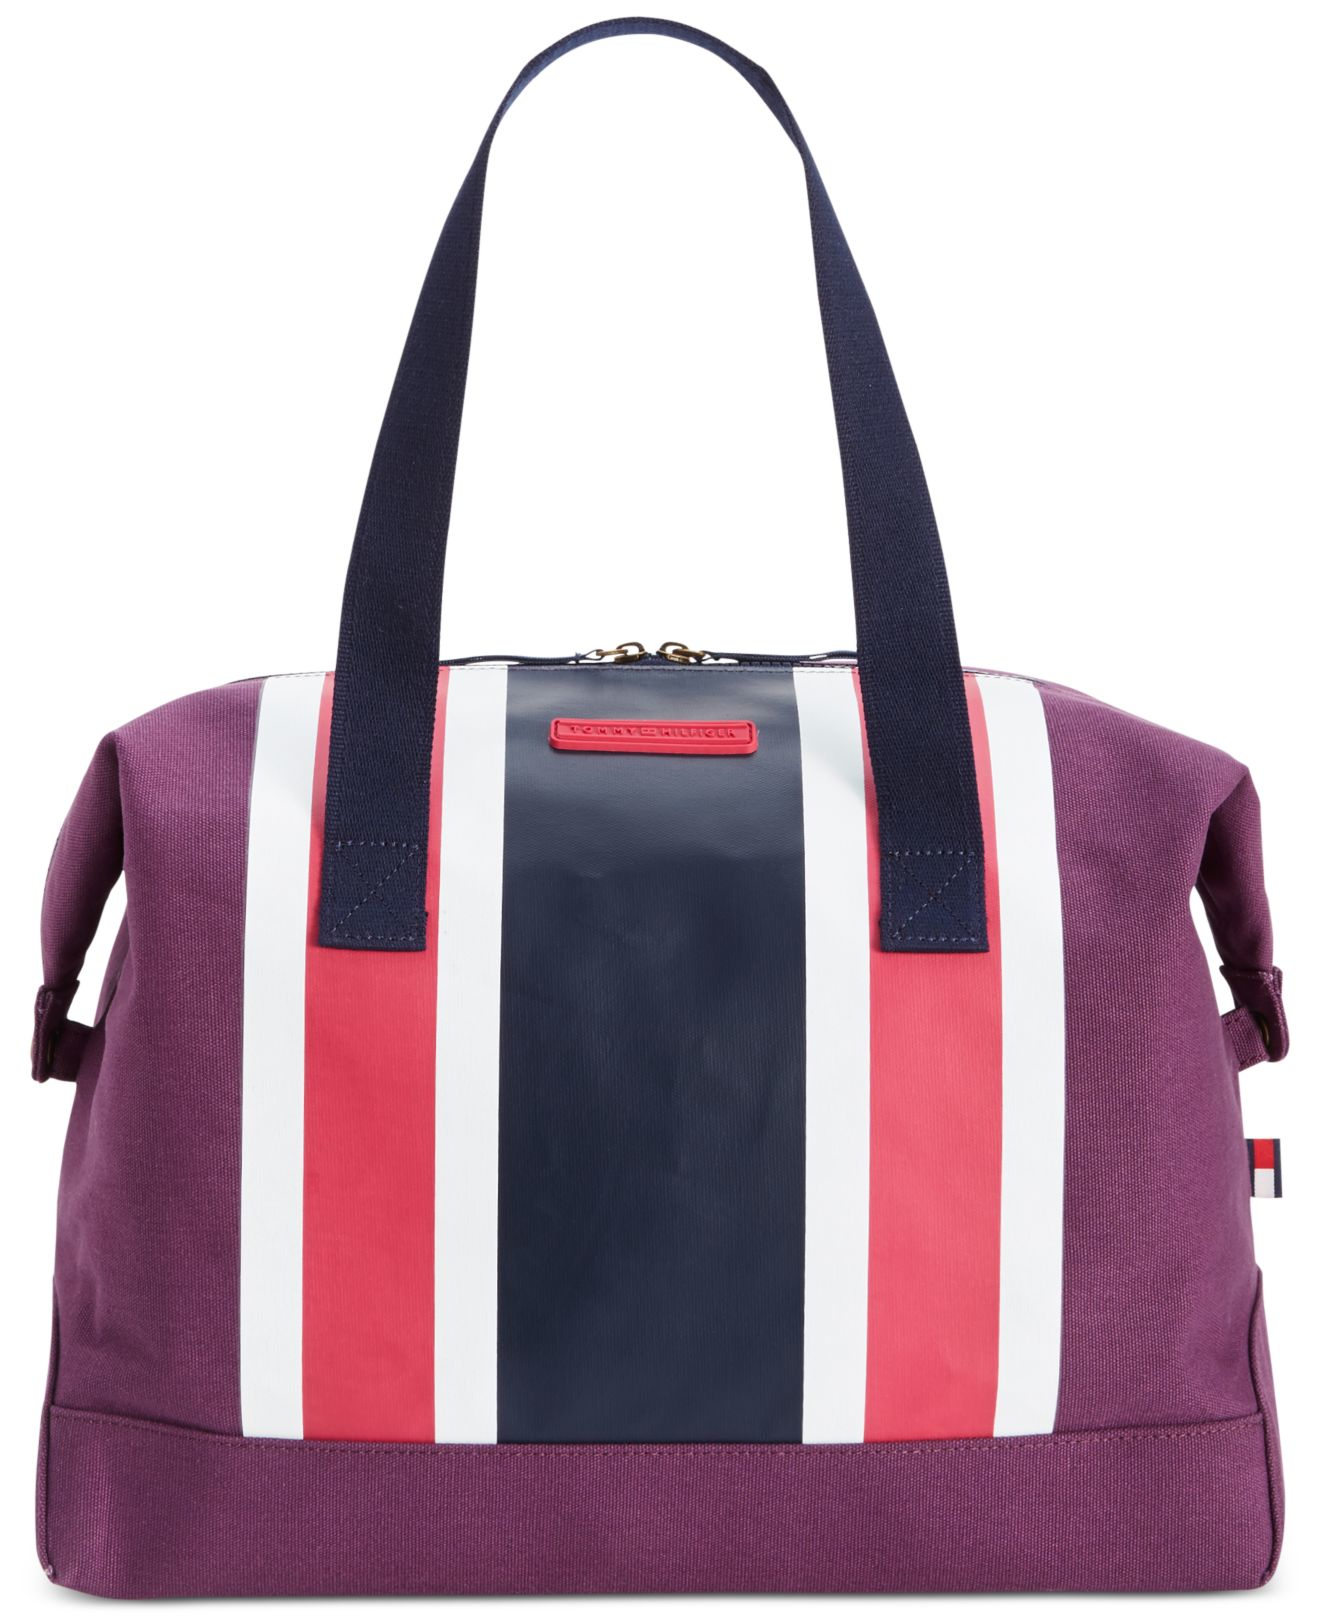 tommy hilfiger th stripes printed canvas large weekender in pink beaujolais pink navy save. Black Bedroom Furniture Sets. Home Design Ideas